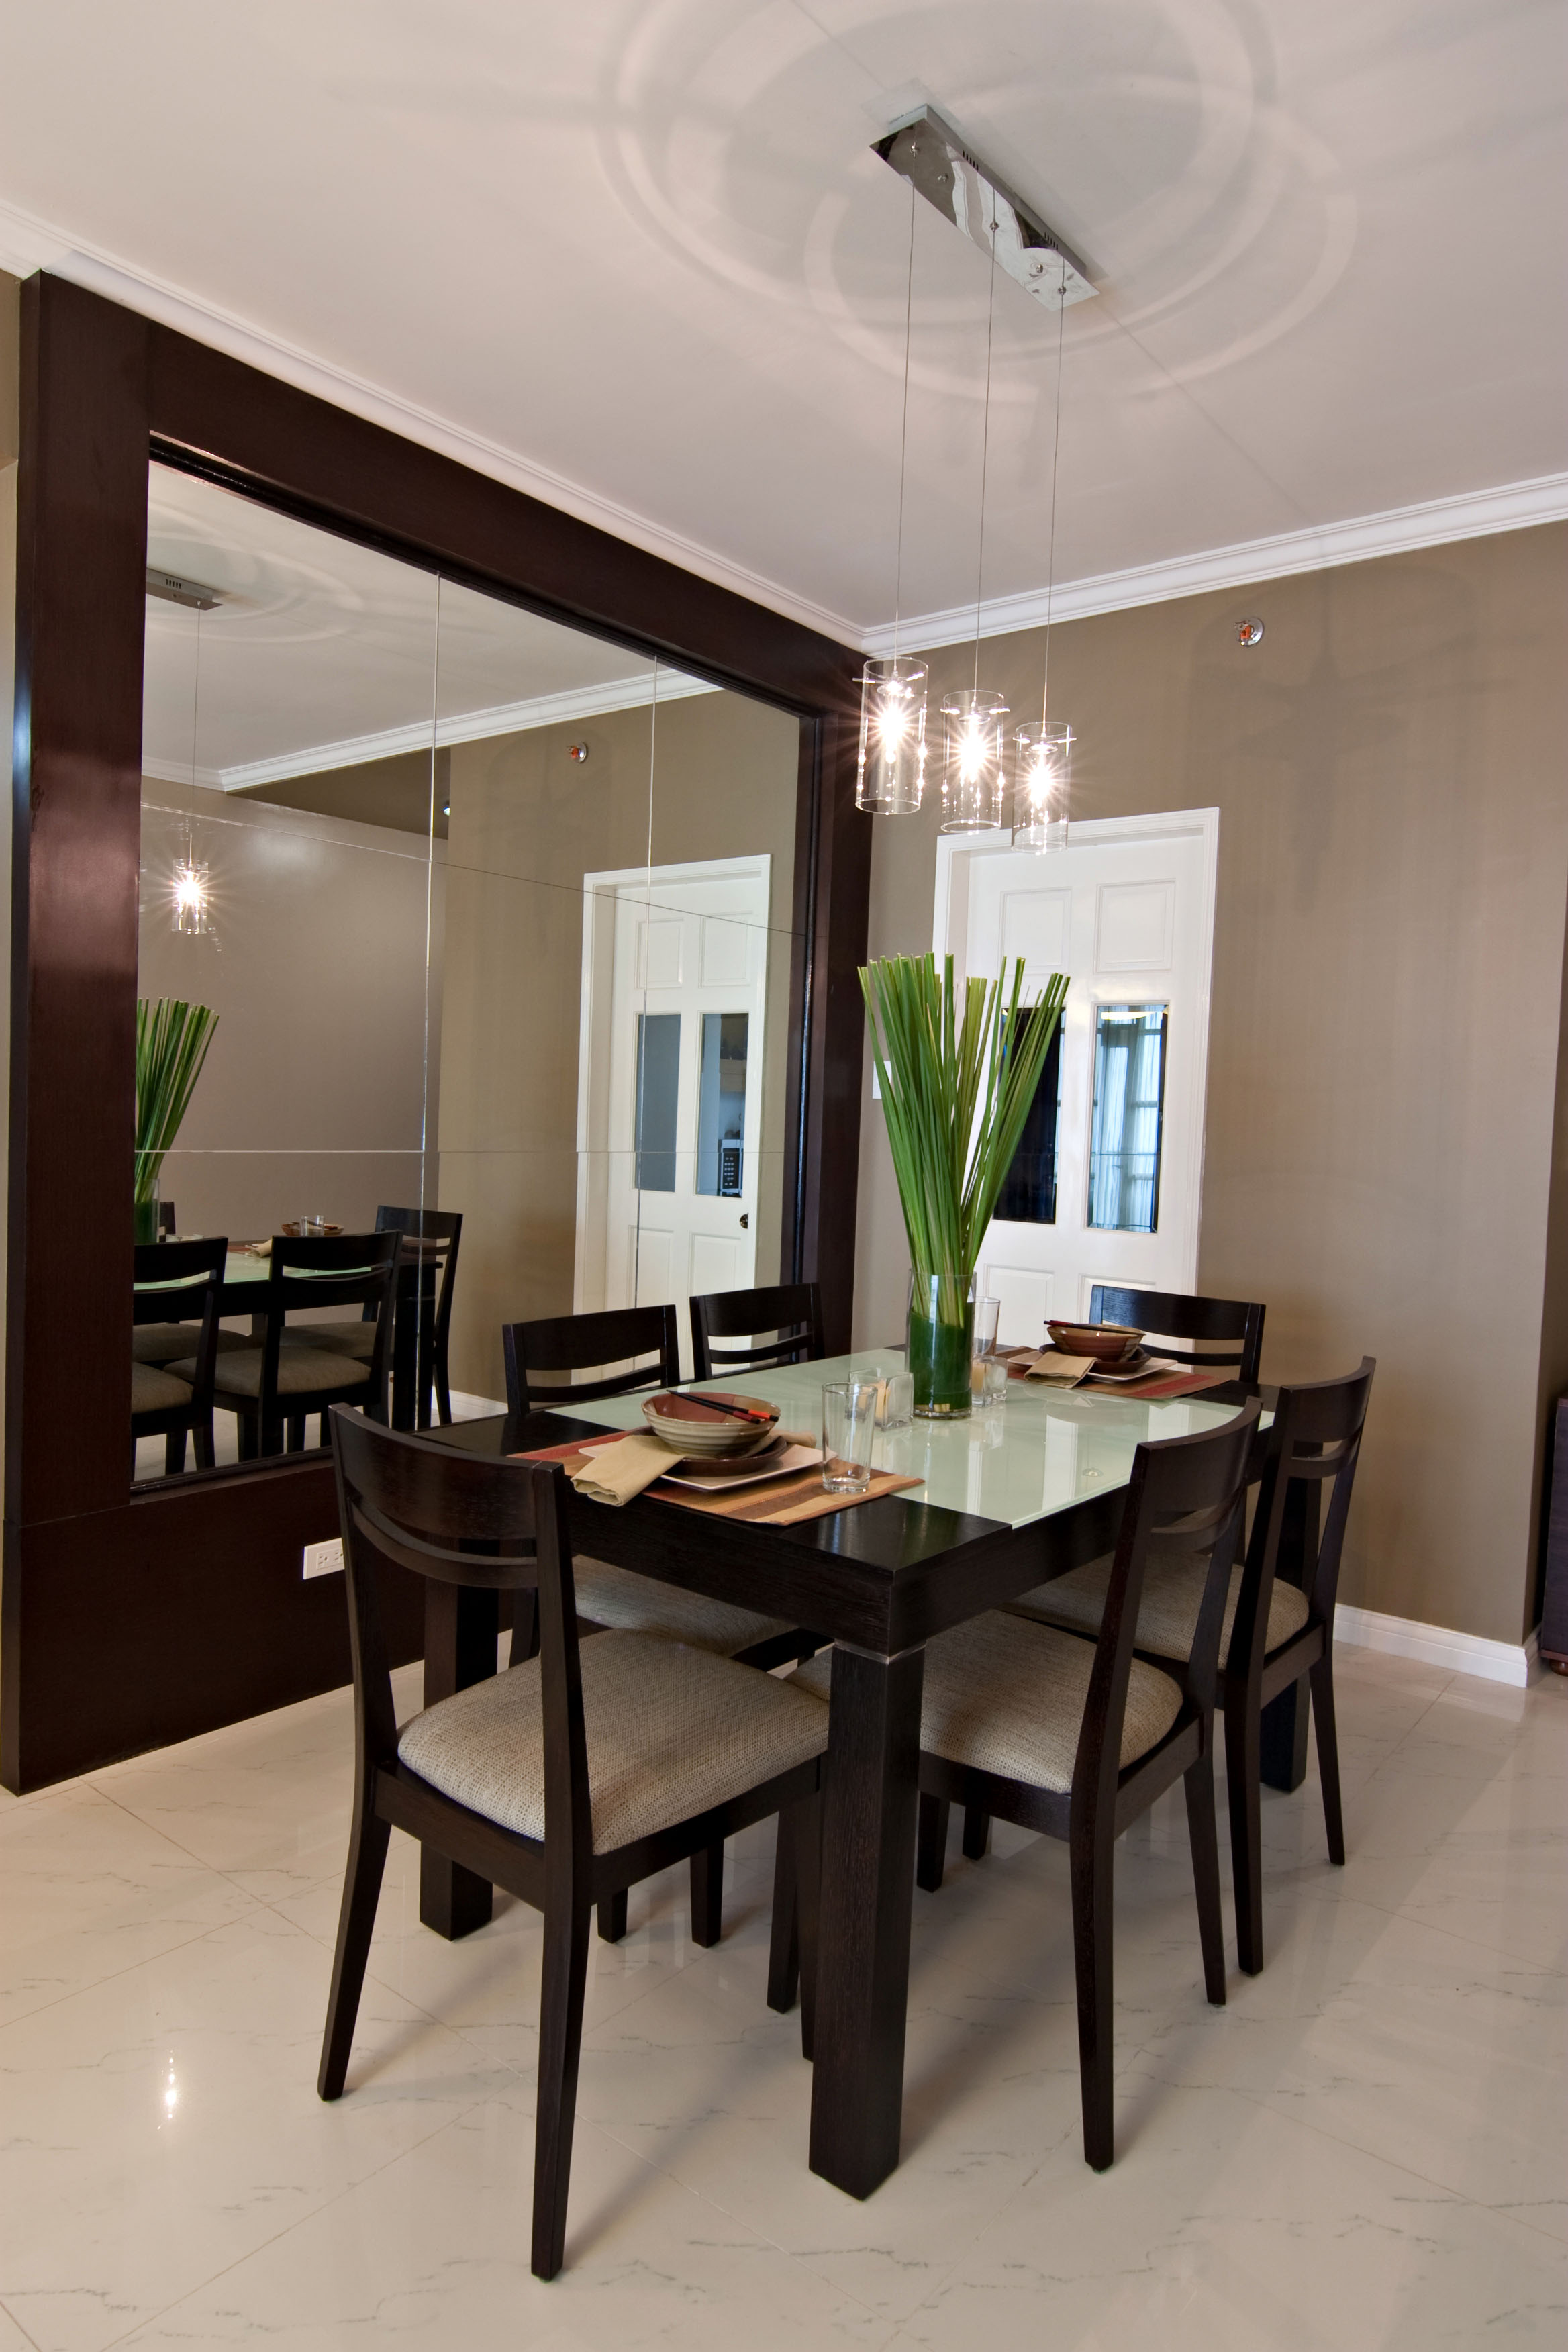 Citylights garden condominium by adrian del monte at for Condo interior design philippines